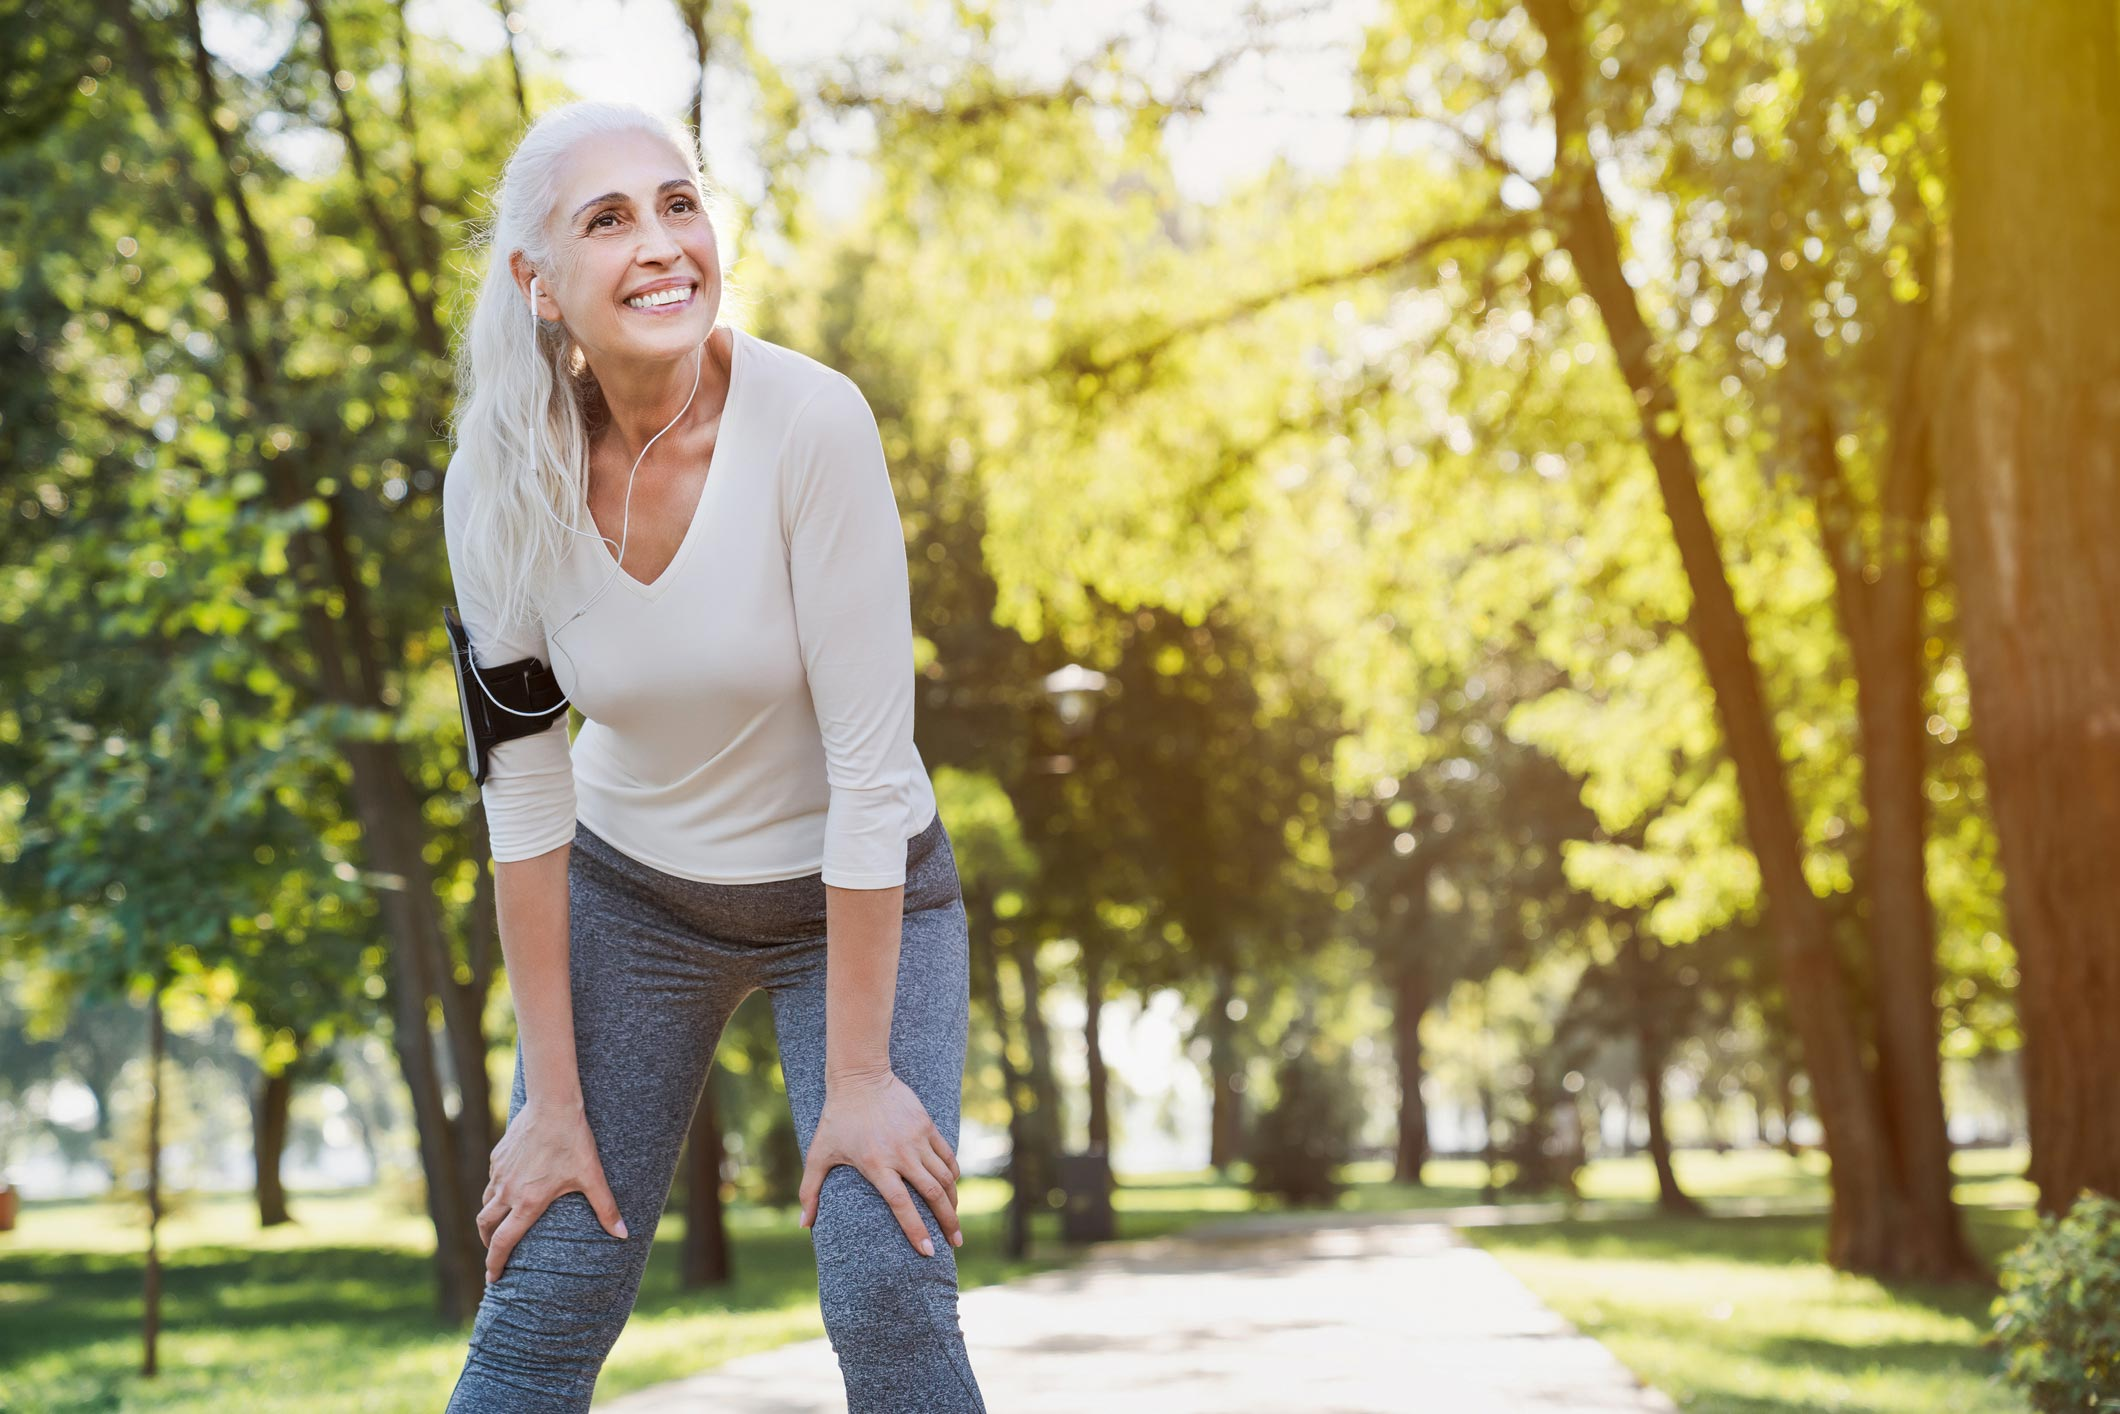 The surprising link between your mouth, lower blood pressure and exercise